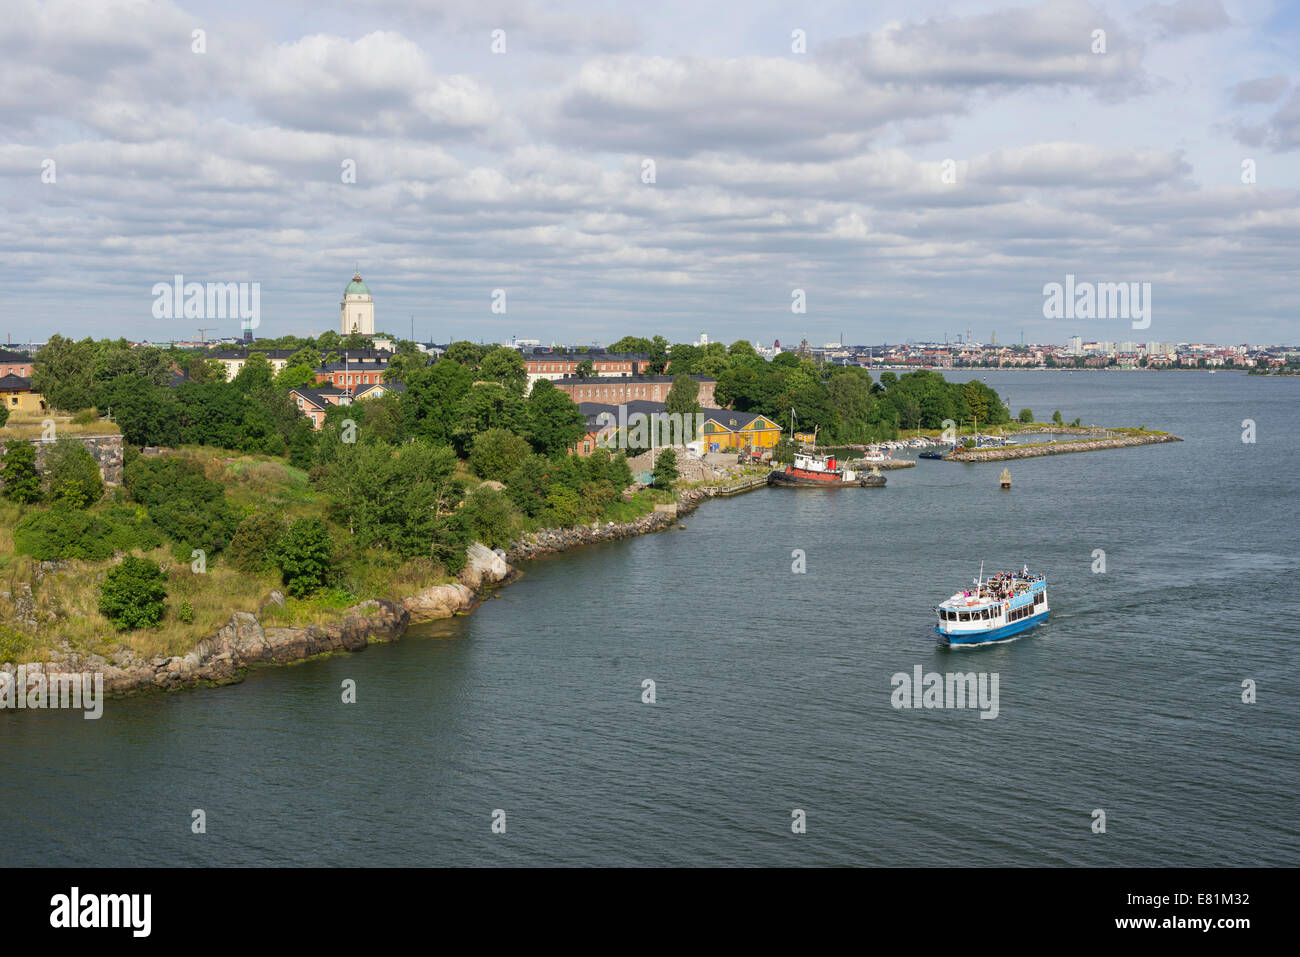 Views of Helsinki with the Suomenlinna Fortress, Uusimaa, Finland - Stock Image